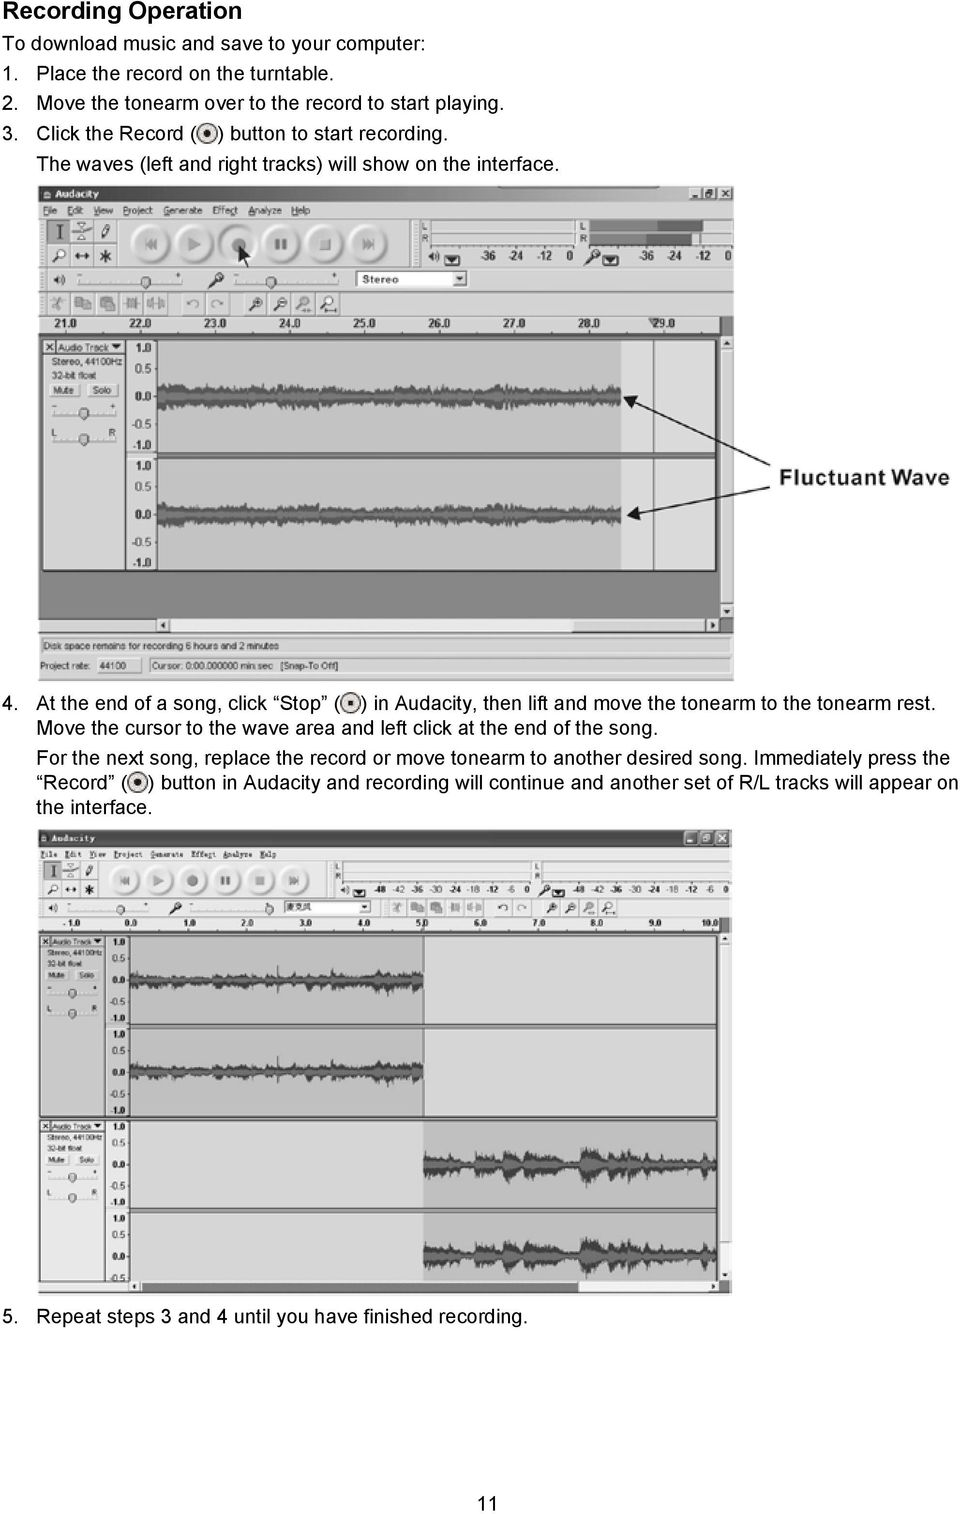 At the end of a song, click Stop ( ) in Audacity, then lift and move the tonearm to the tonearm rest. Move the cursor to the wave area and left click at the end of the song.